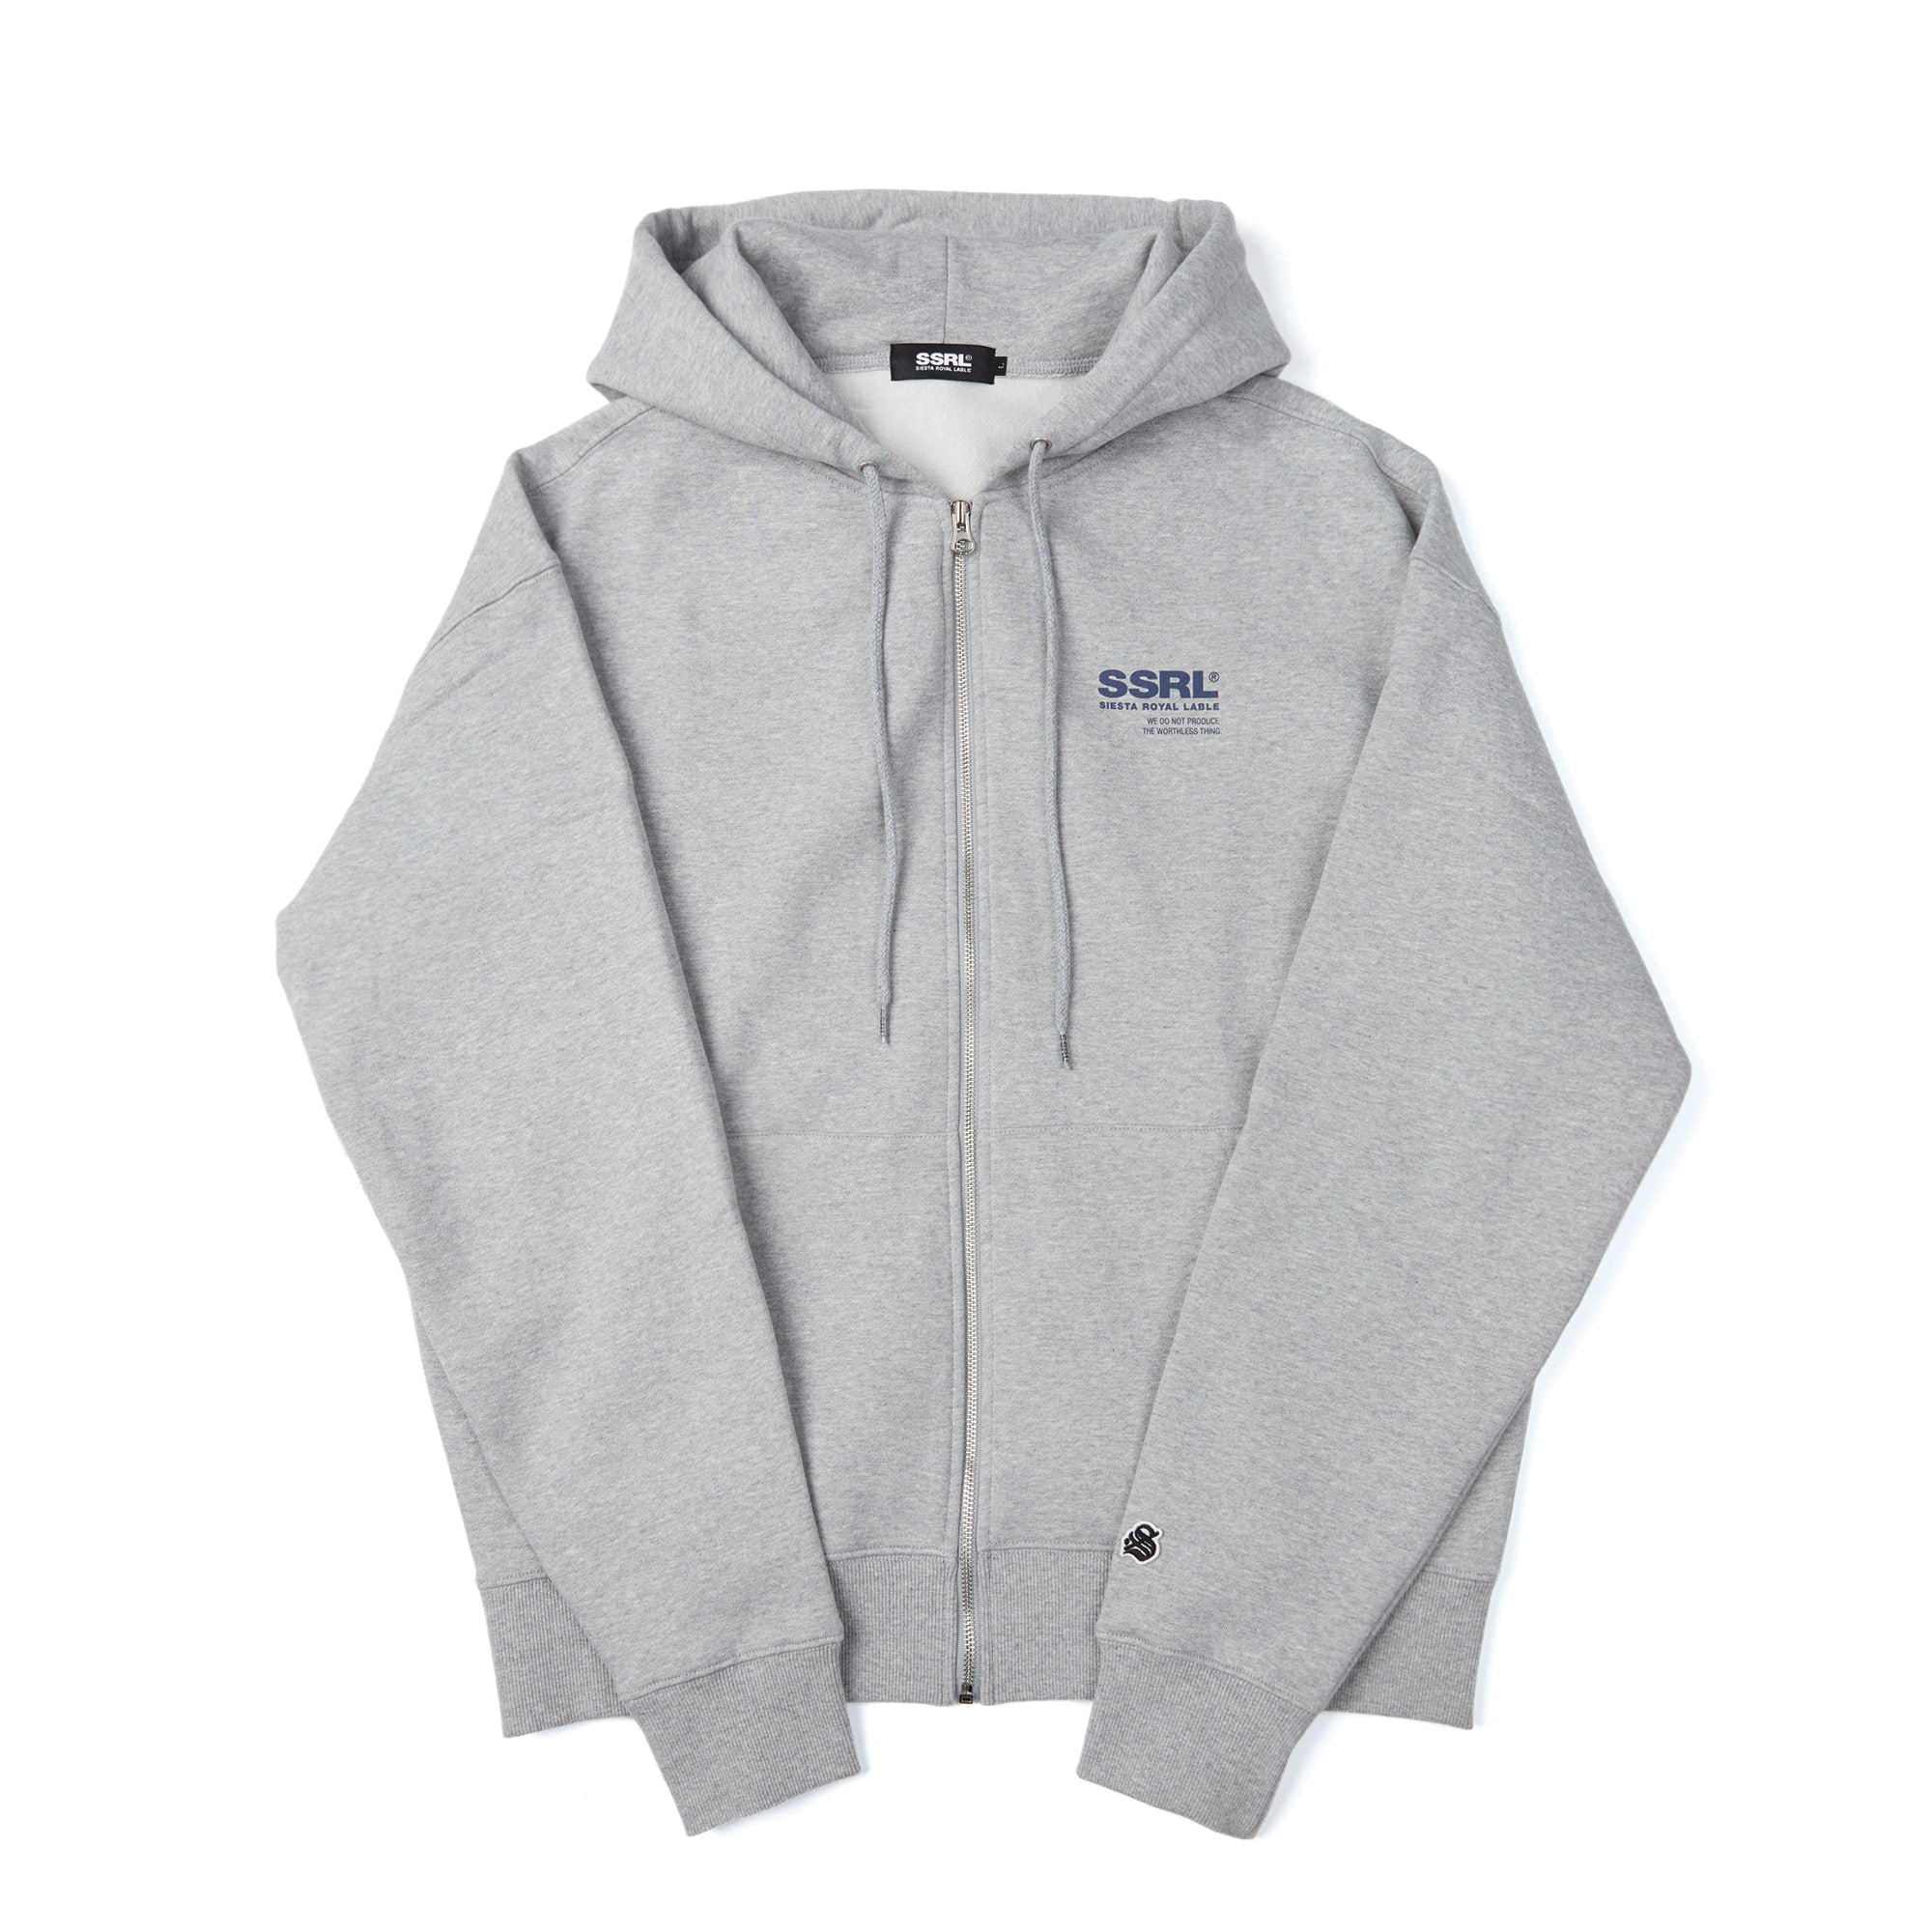 h-logo zip up / gray